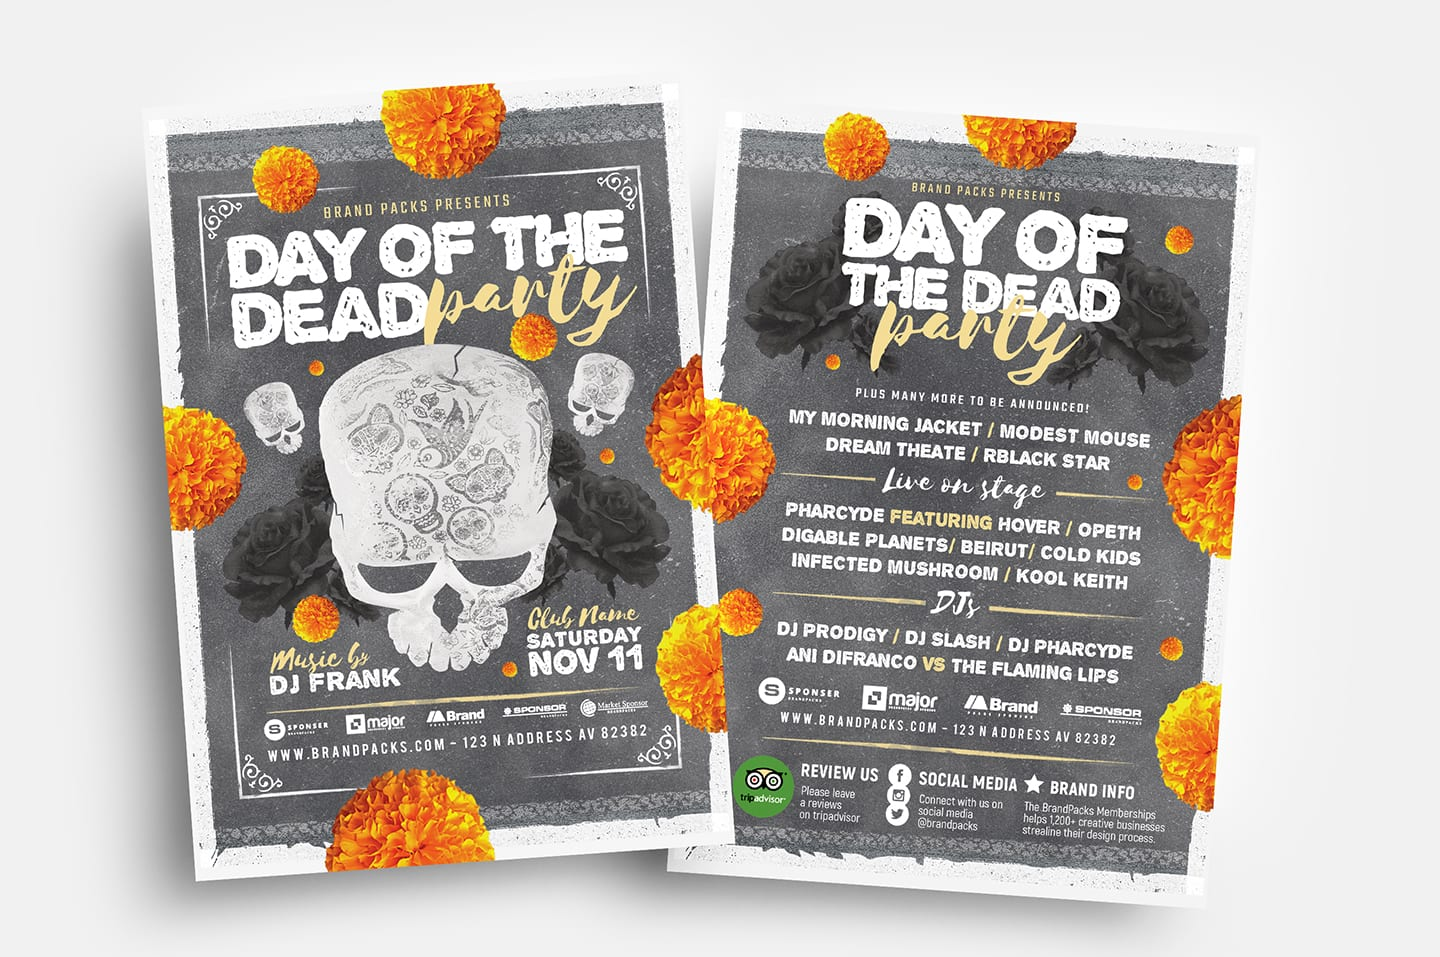 Day of The Dead Party Flyer Templates